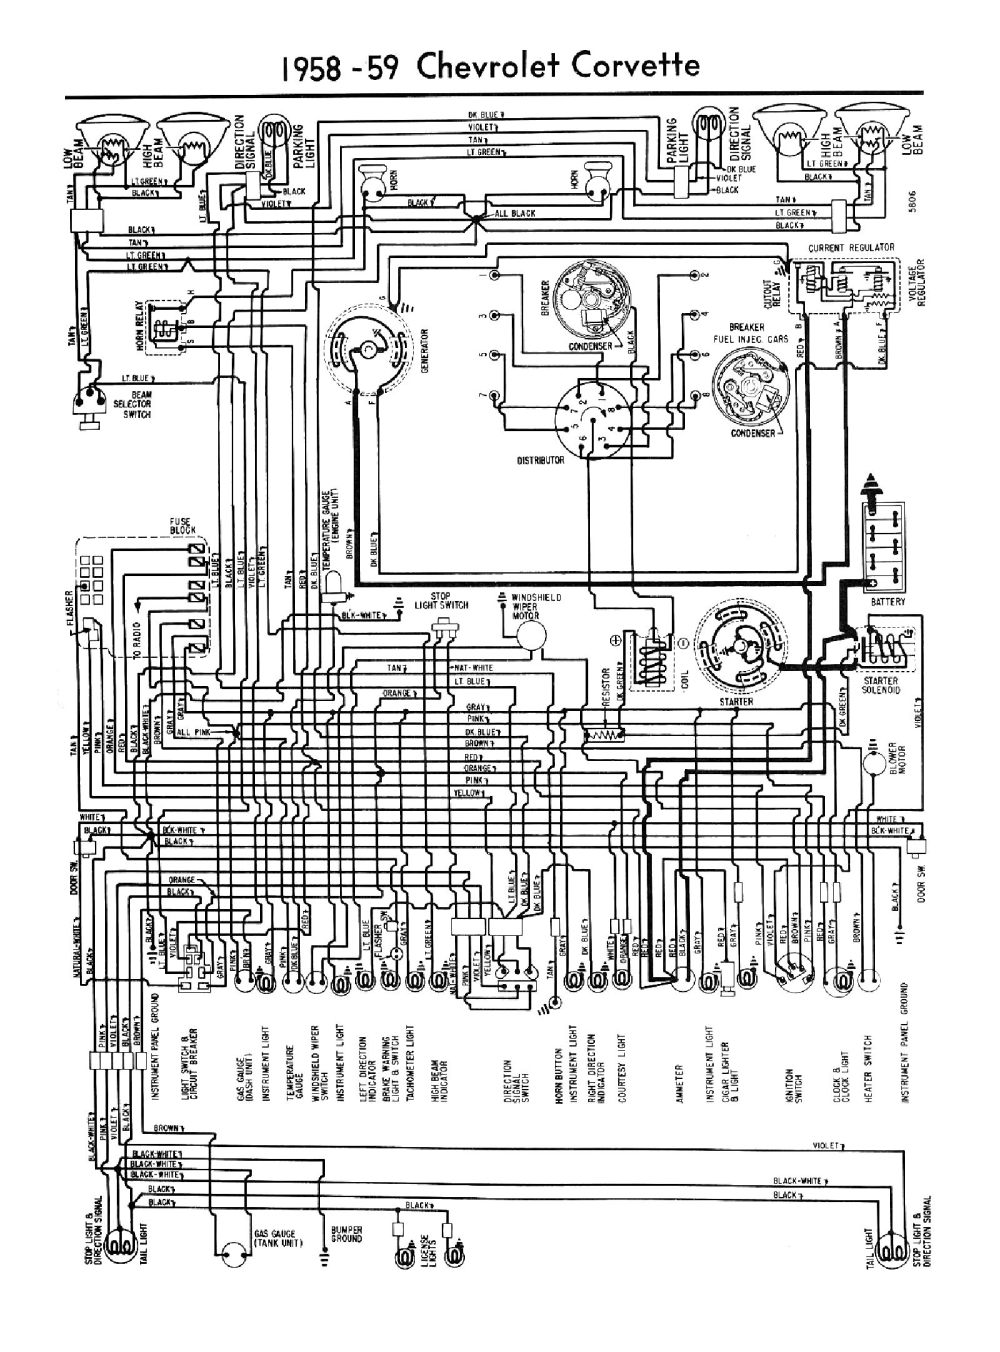 medium resolution of 1958 dodge wiring diagram wiring diagram third level dodge schematics 1958 dodge wiring diagram